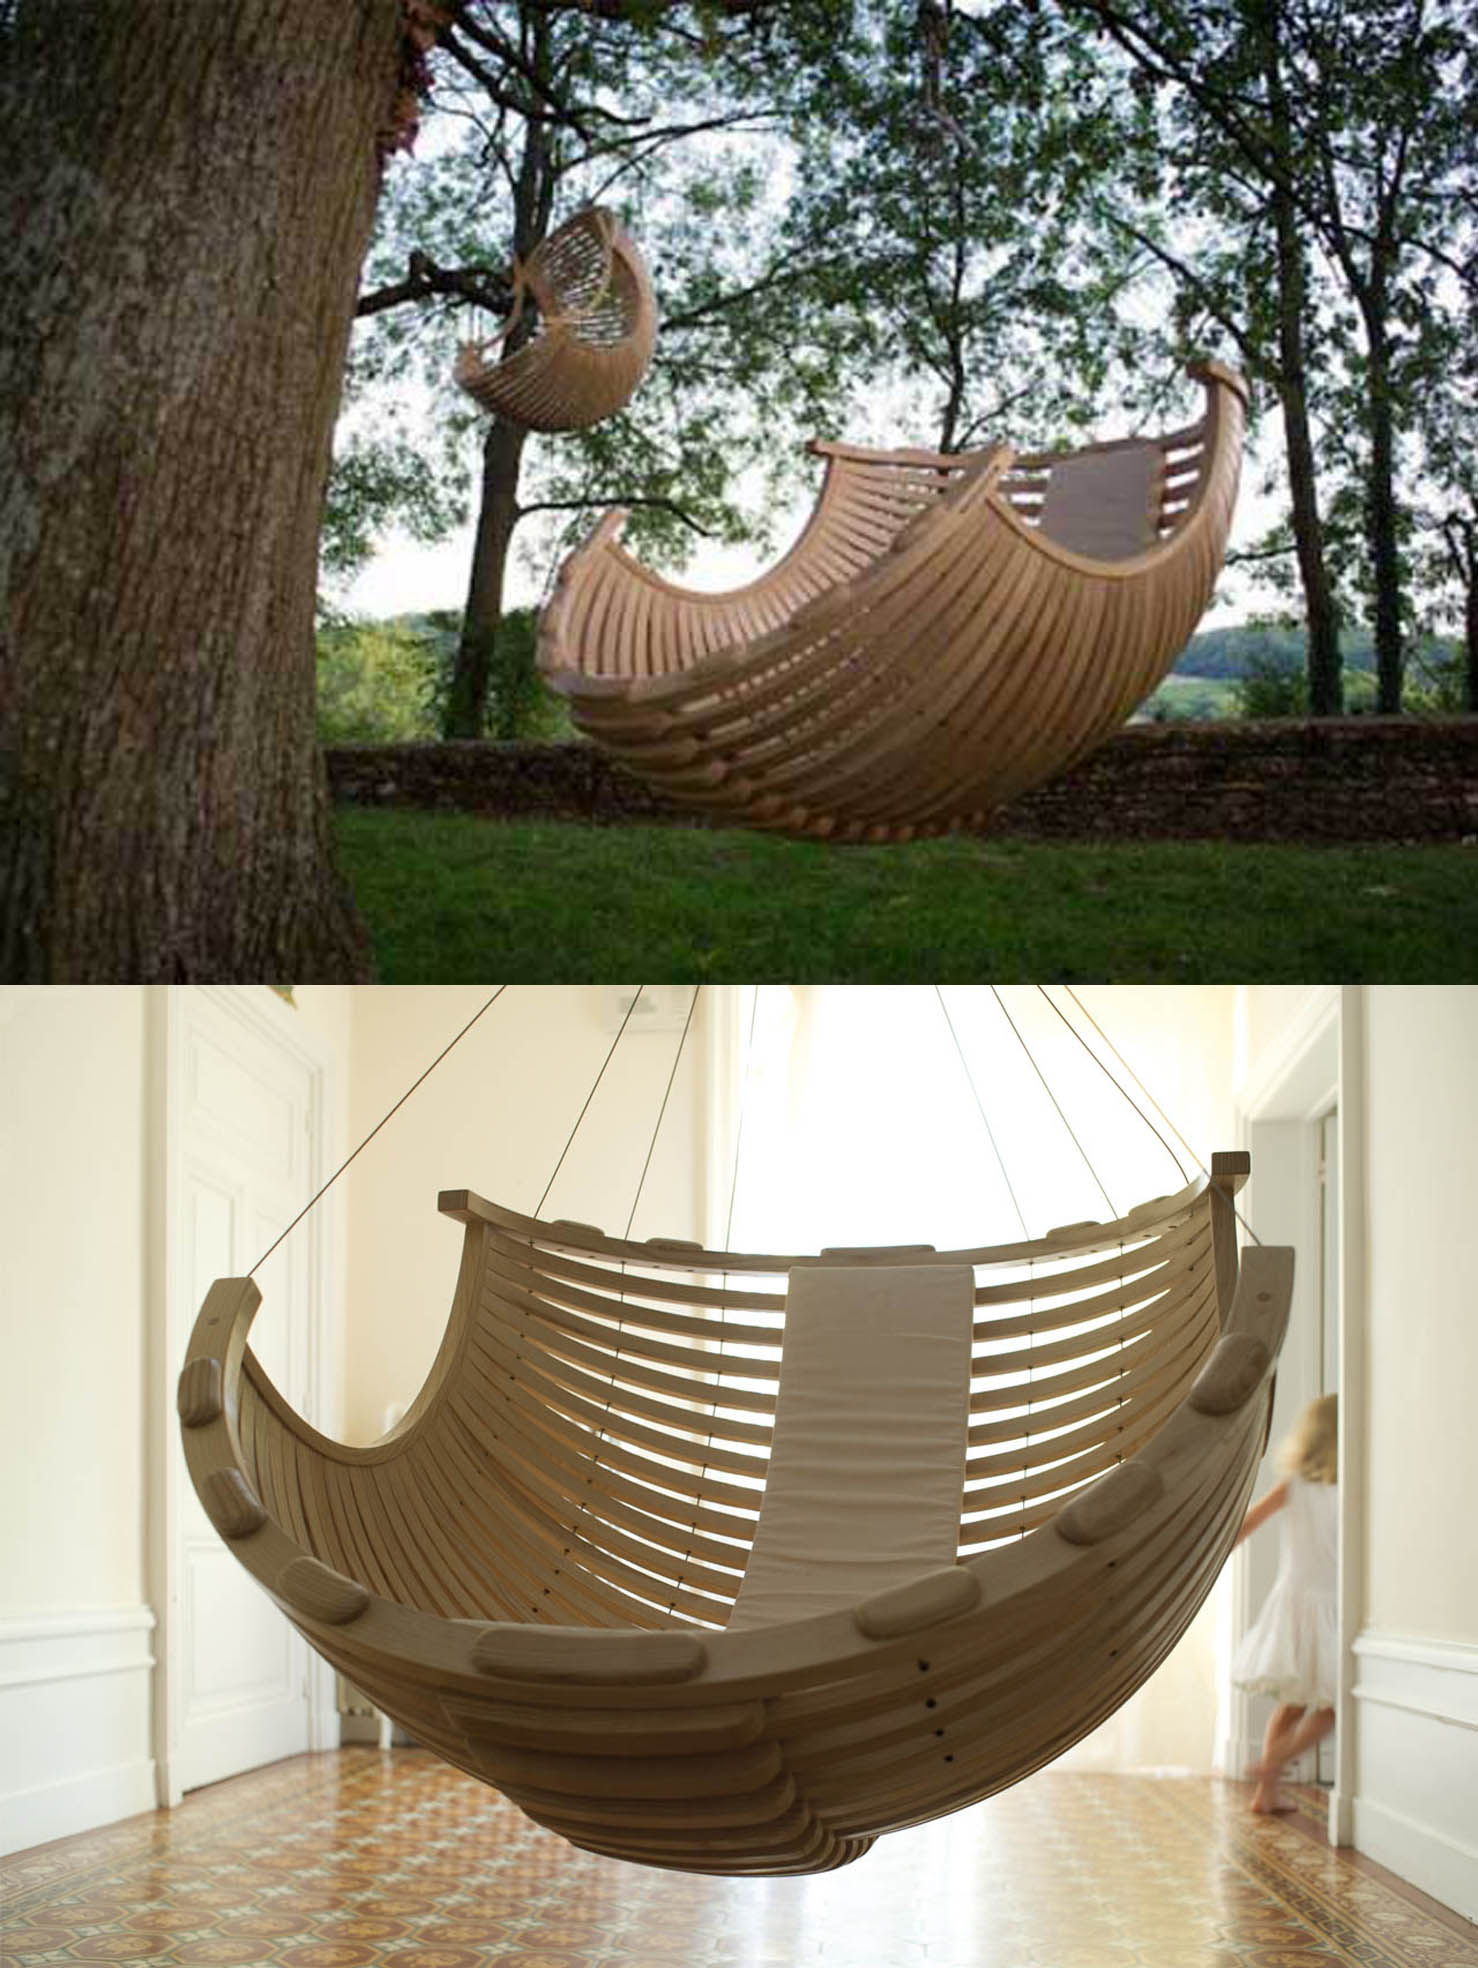 Fantastic Furniture: Outdoor Hanging Chairs – F.I.N.D.S.